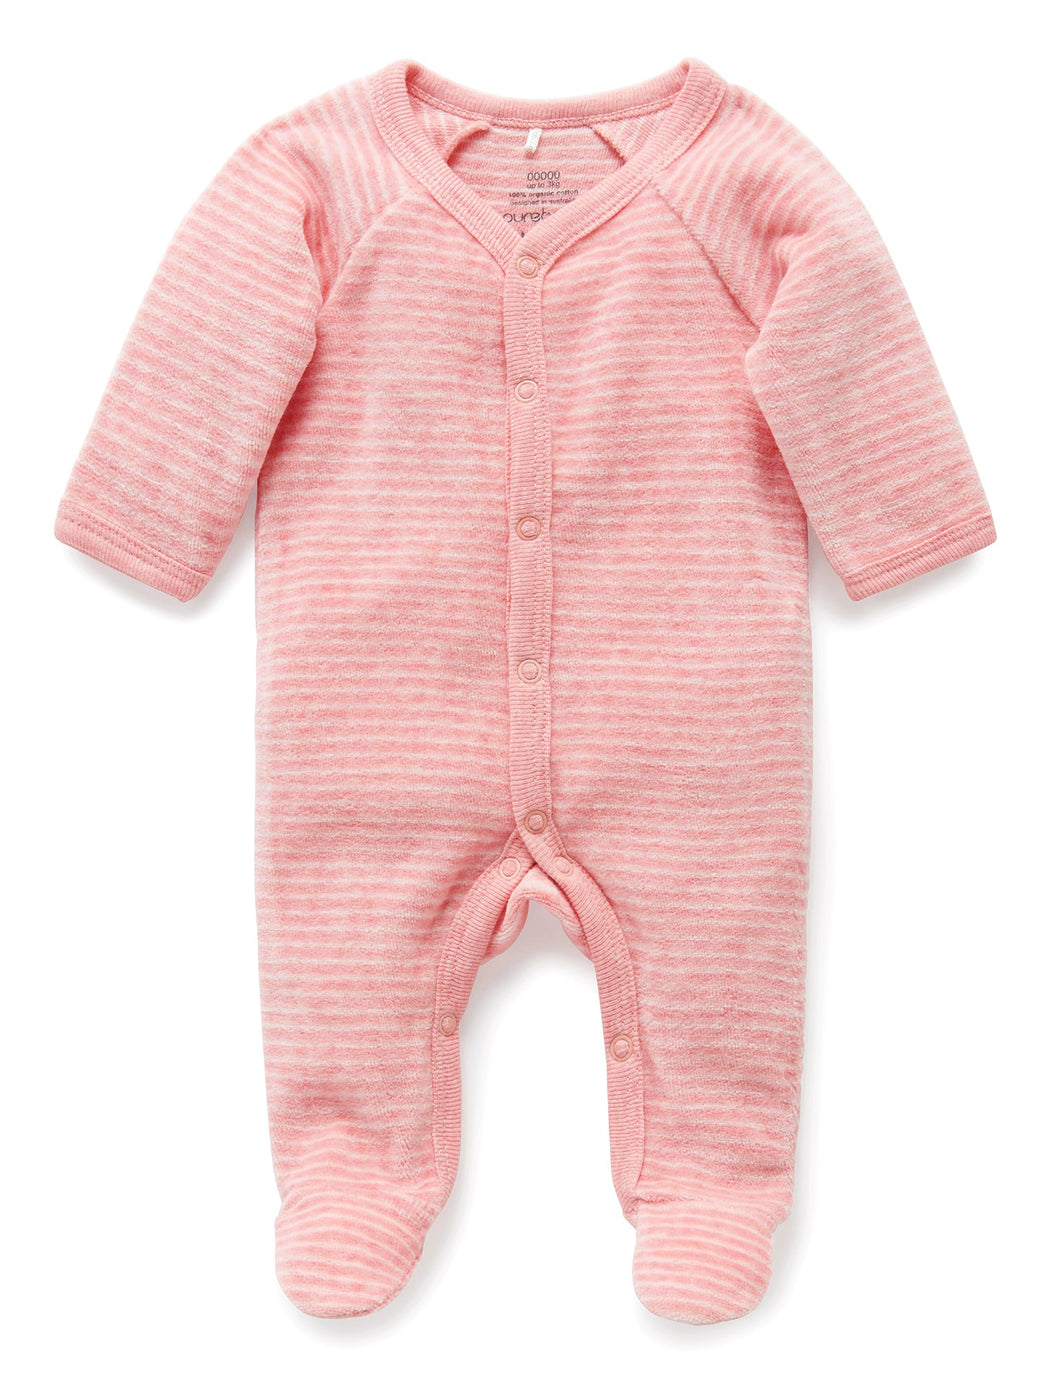 Pure Baby Premmie Velour Growsuit - Bud Pink Stripe